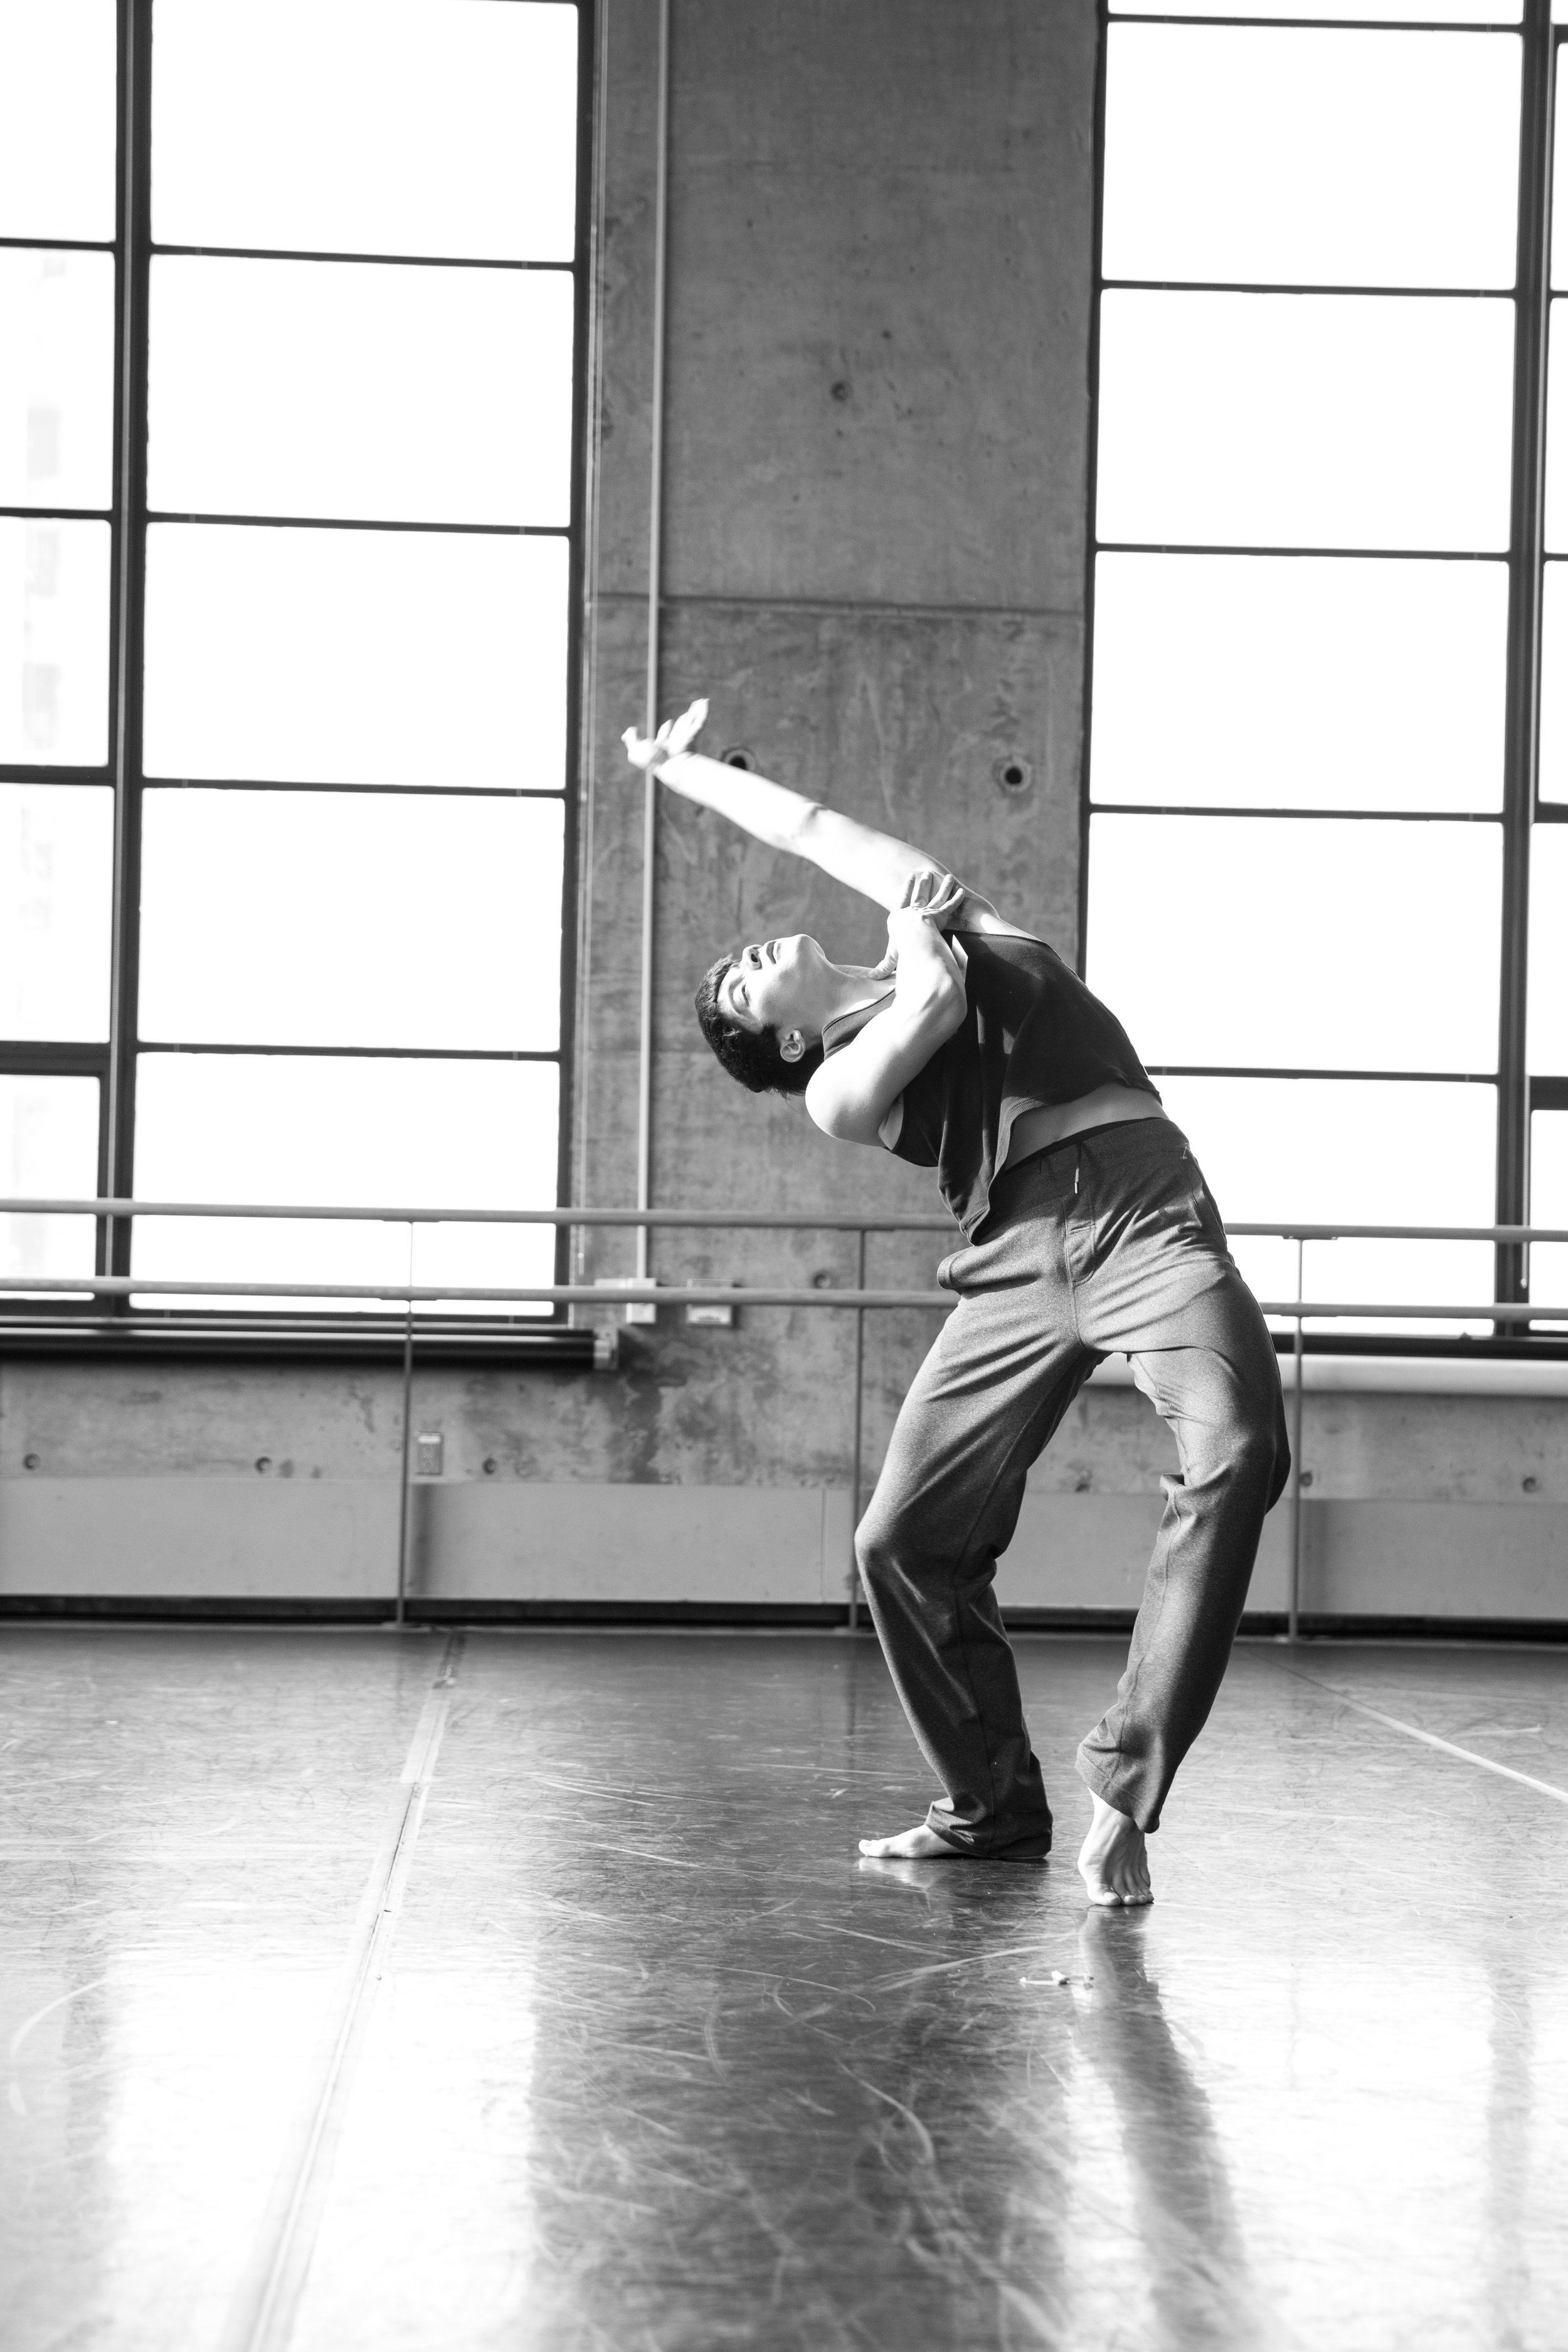 Zachary Gonder - At the age of five, Zachary Gonder started dancing at The Dance Connection, a local studio in his hometown north of Chicago. He then trained at the Chicago Academy for the Arts High School under the tutelage of renowned choreographer Randy Duncan. He graduated from Juilliard in 2018 and performed works there by Austin McCormick, José Limón, Aszure Barton, Pam Tanowitz, Richard Alston, Gustavo Ramirez Sansano and Crystal Pite. Zachary has worked for BODYTRAFFIC in L.A. as well as the Barton Sisters' Axis Connect Program. He performed in Pam Tanowitz's 'Four Quartets' at Bard College and the Barbican Theatre in London. Currently he also dances for Brian Brooks Moving Company and Zvi Dance. Zachary is excited to be dancing with NVA & Guests.(ig @zag11)Photo by Richard Corman for Axis Connect